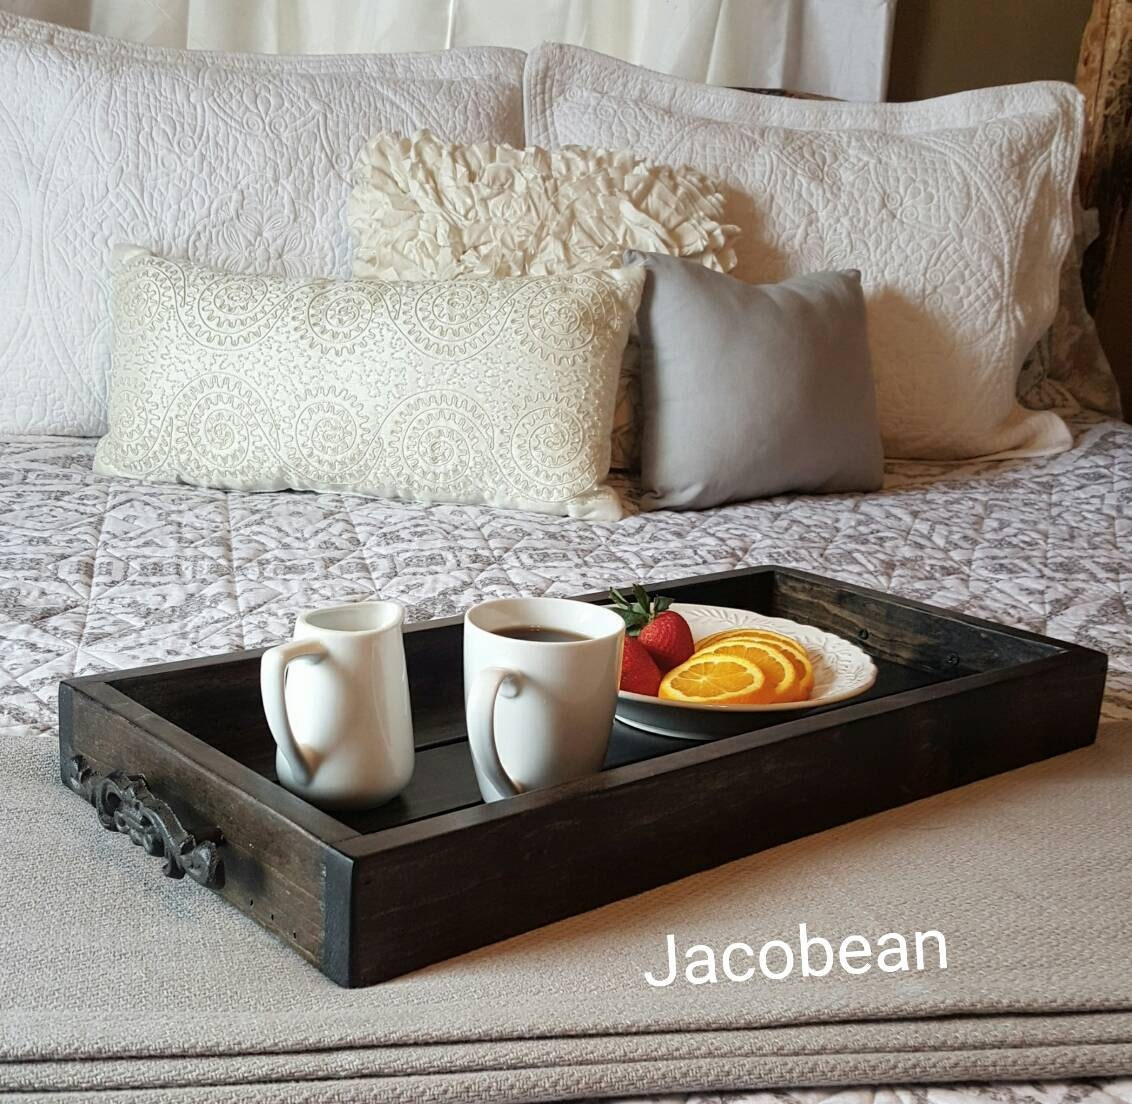 magazine tray - bed tray - breakfast tray - decorative tray